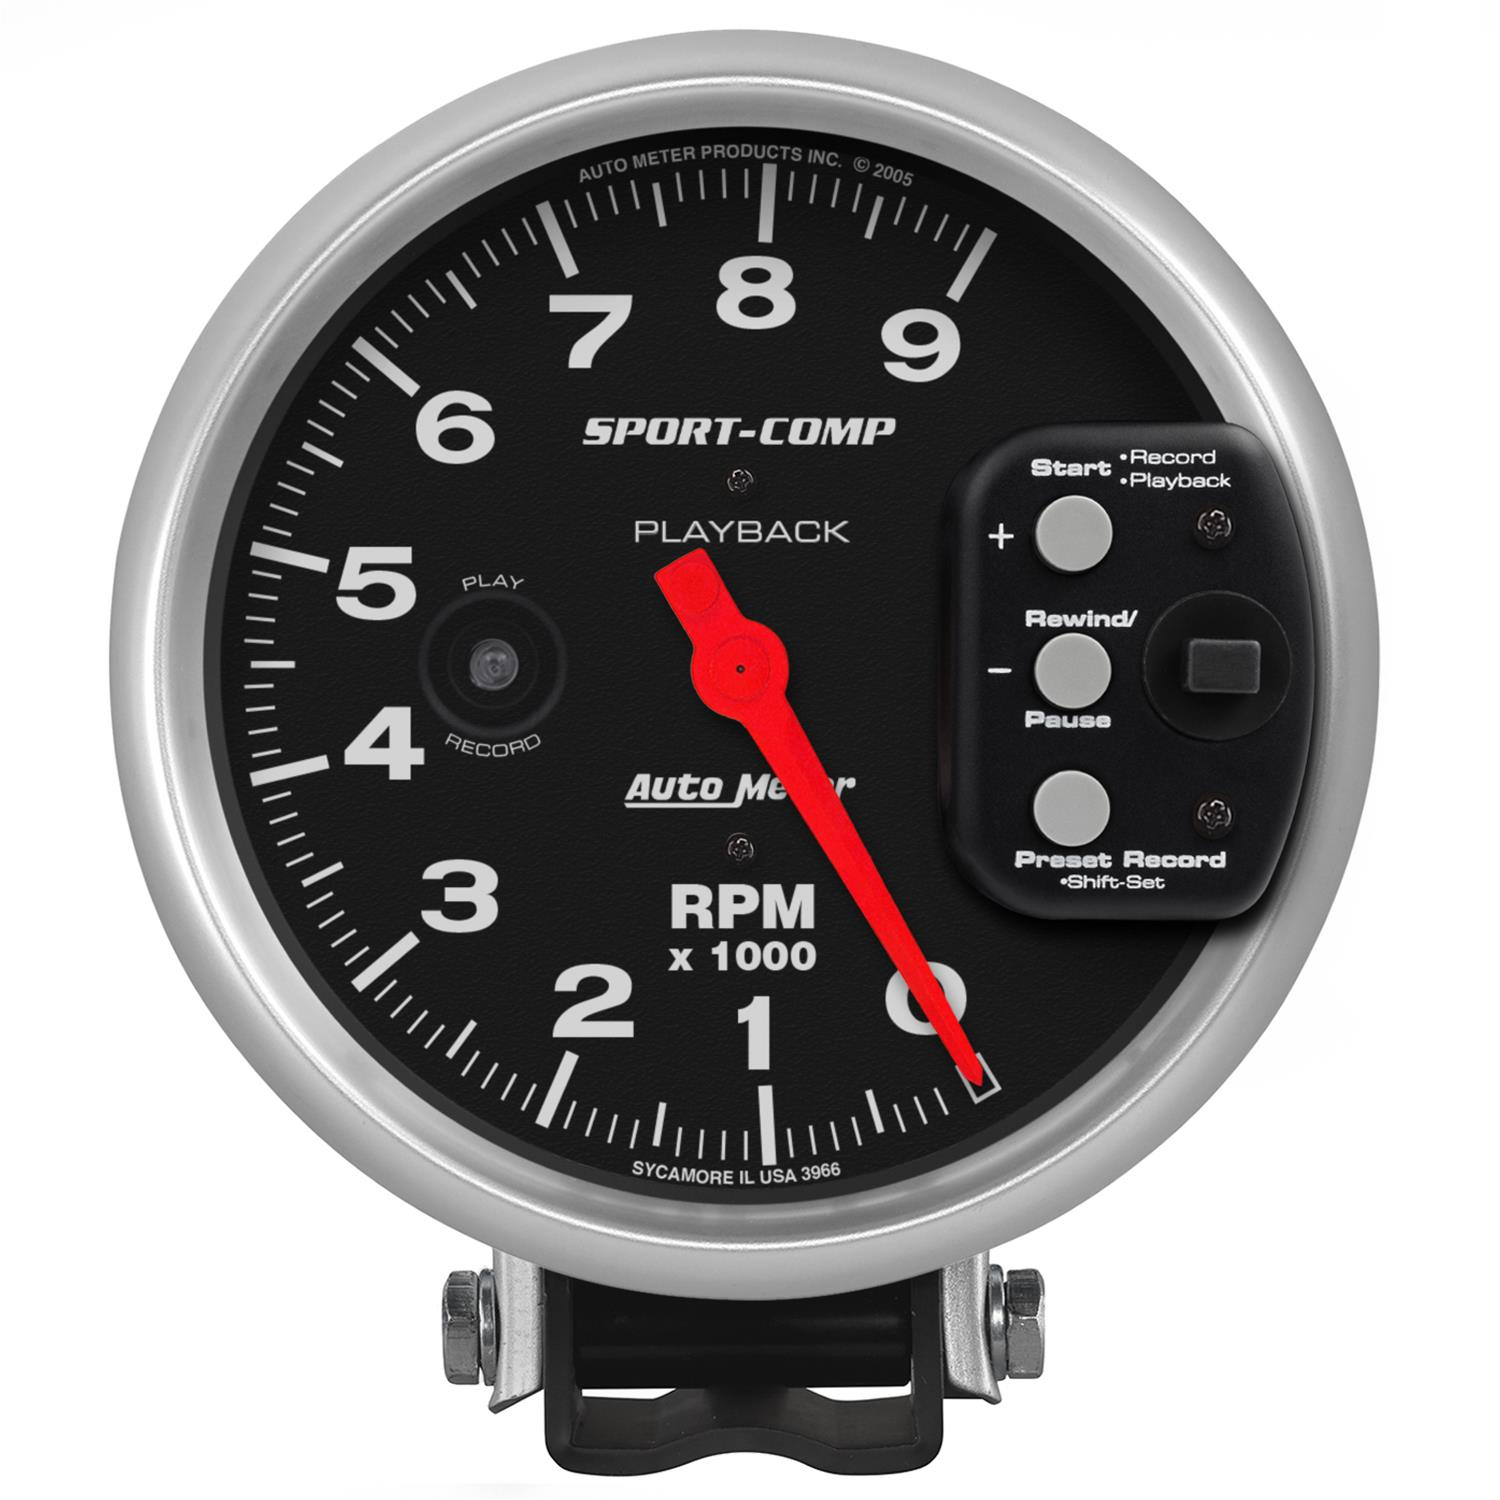 AutoMeter Sport-Comp Playback Tachometers 3966 on